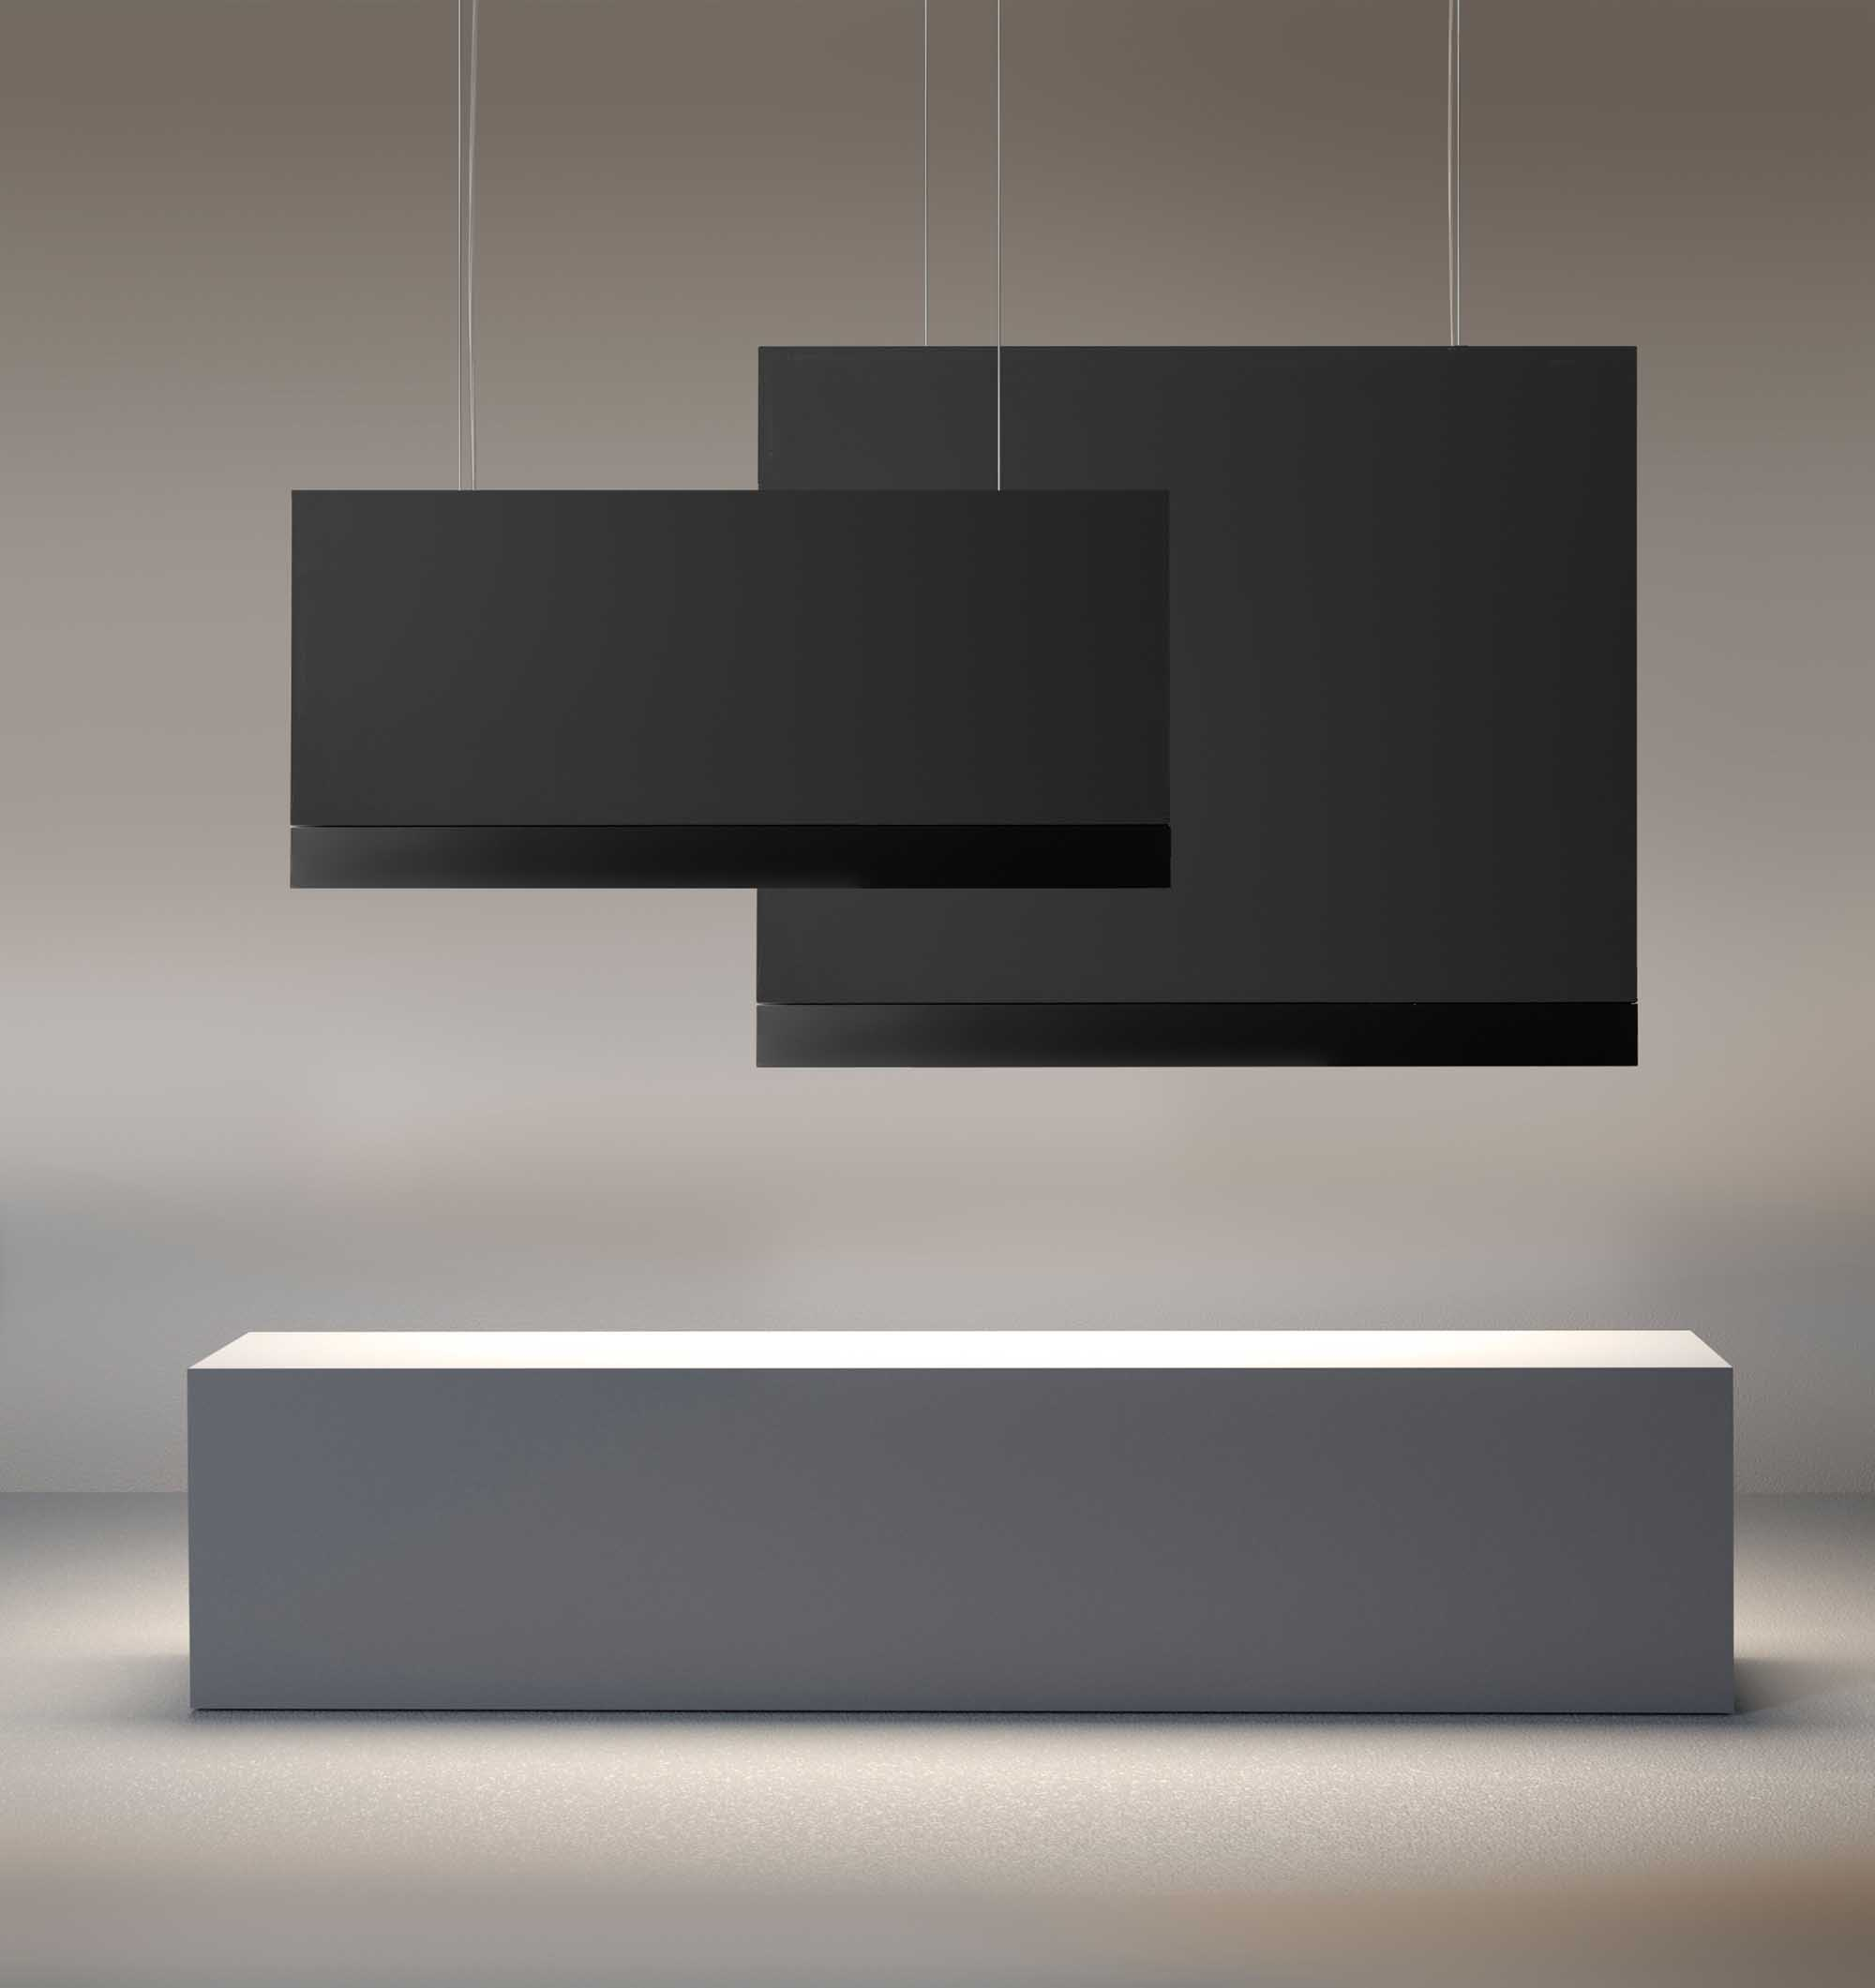 STAGE_VERTICAL_SILENCE (1)_OLEV_lamp_suspension_sospensione_LED_fonoassorbente